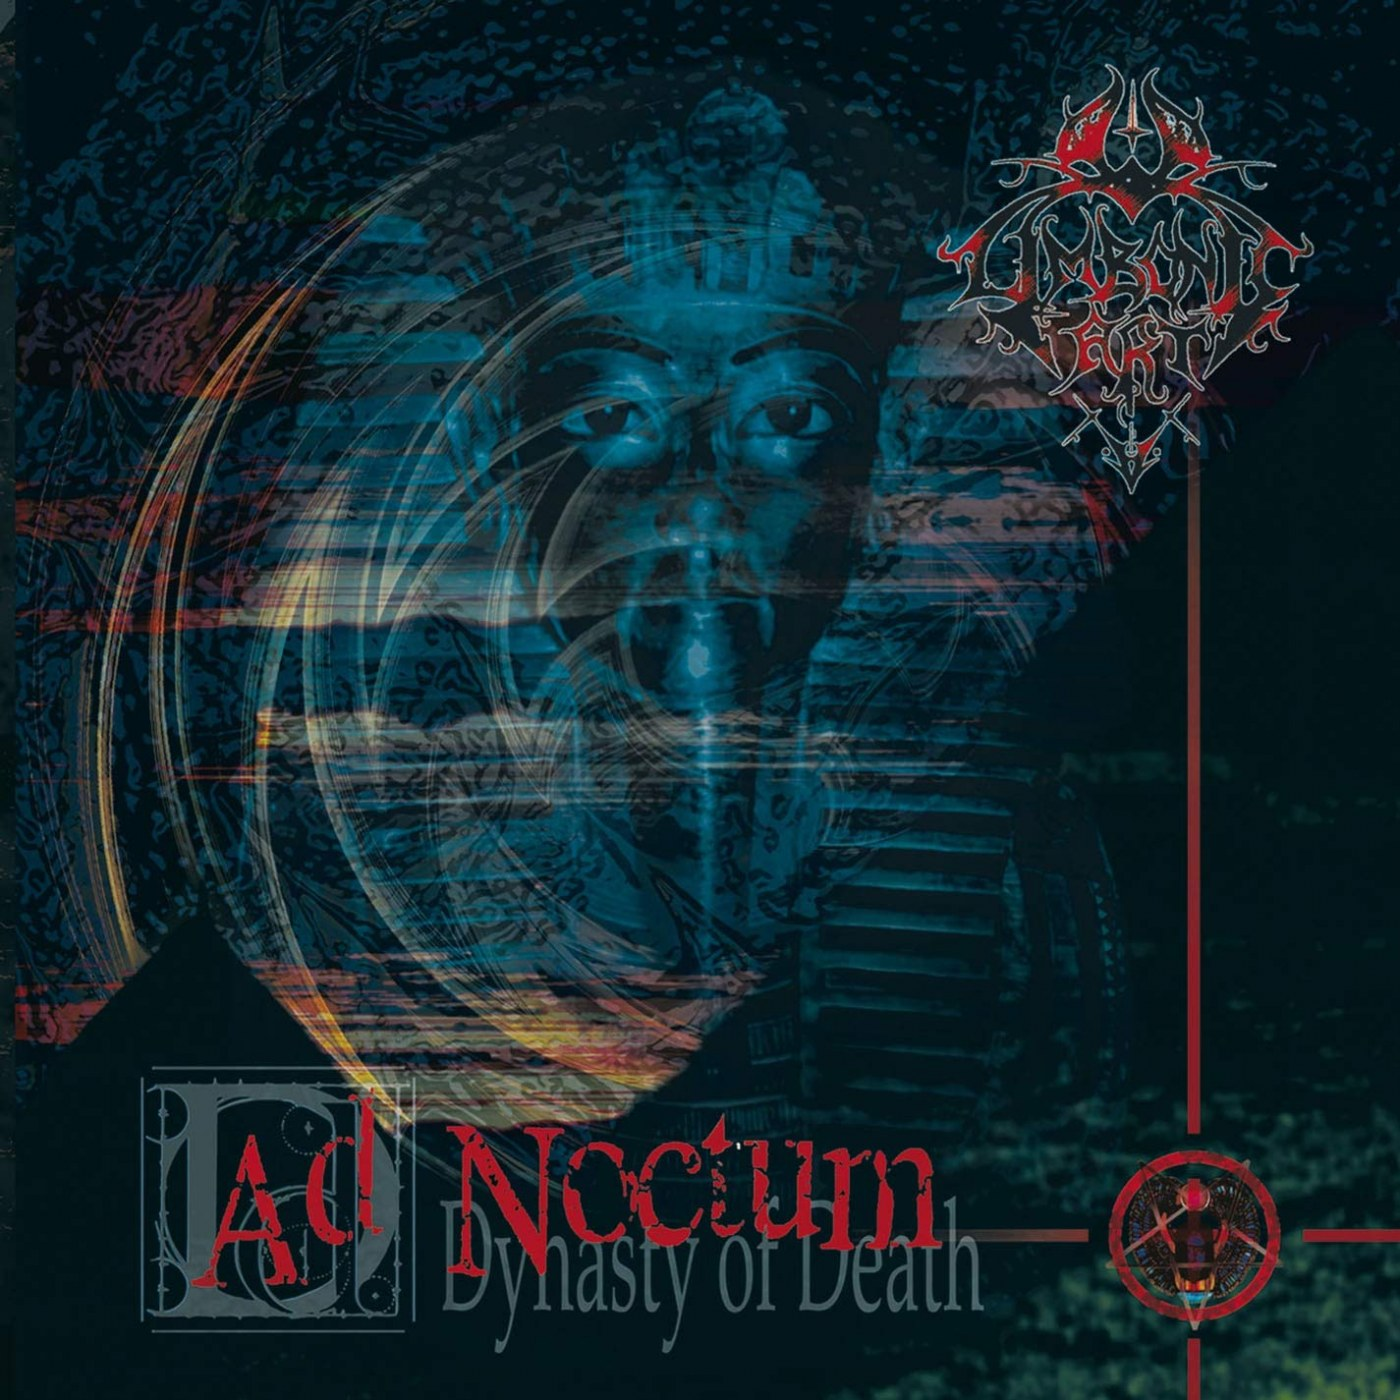 Review for Limbonic Art - Ad Noctum (Dynasty of Death)